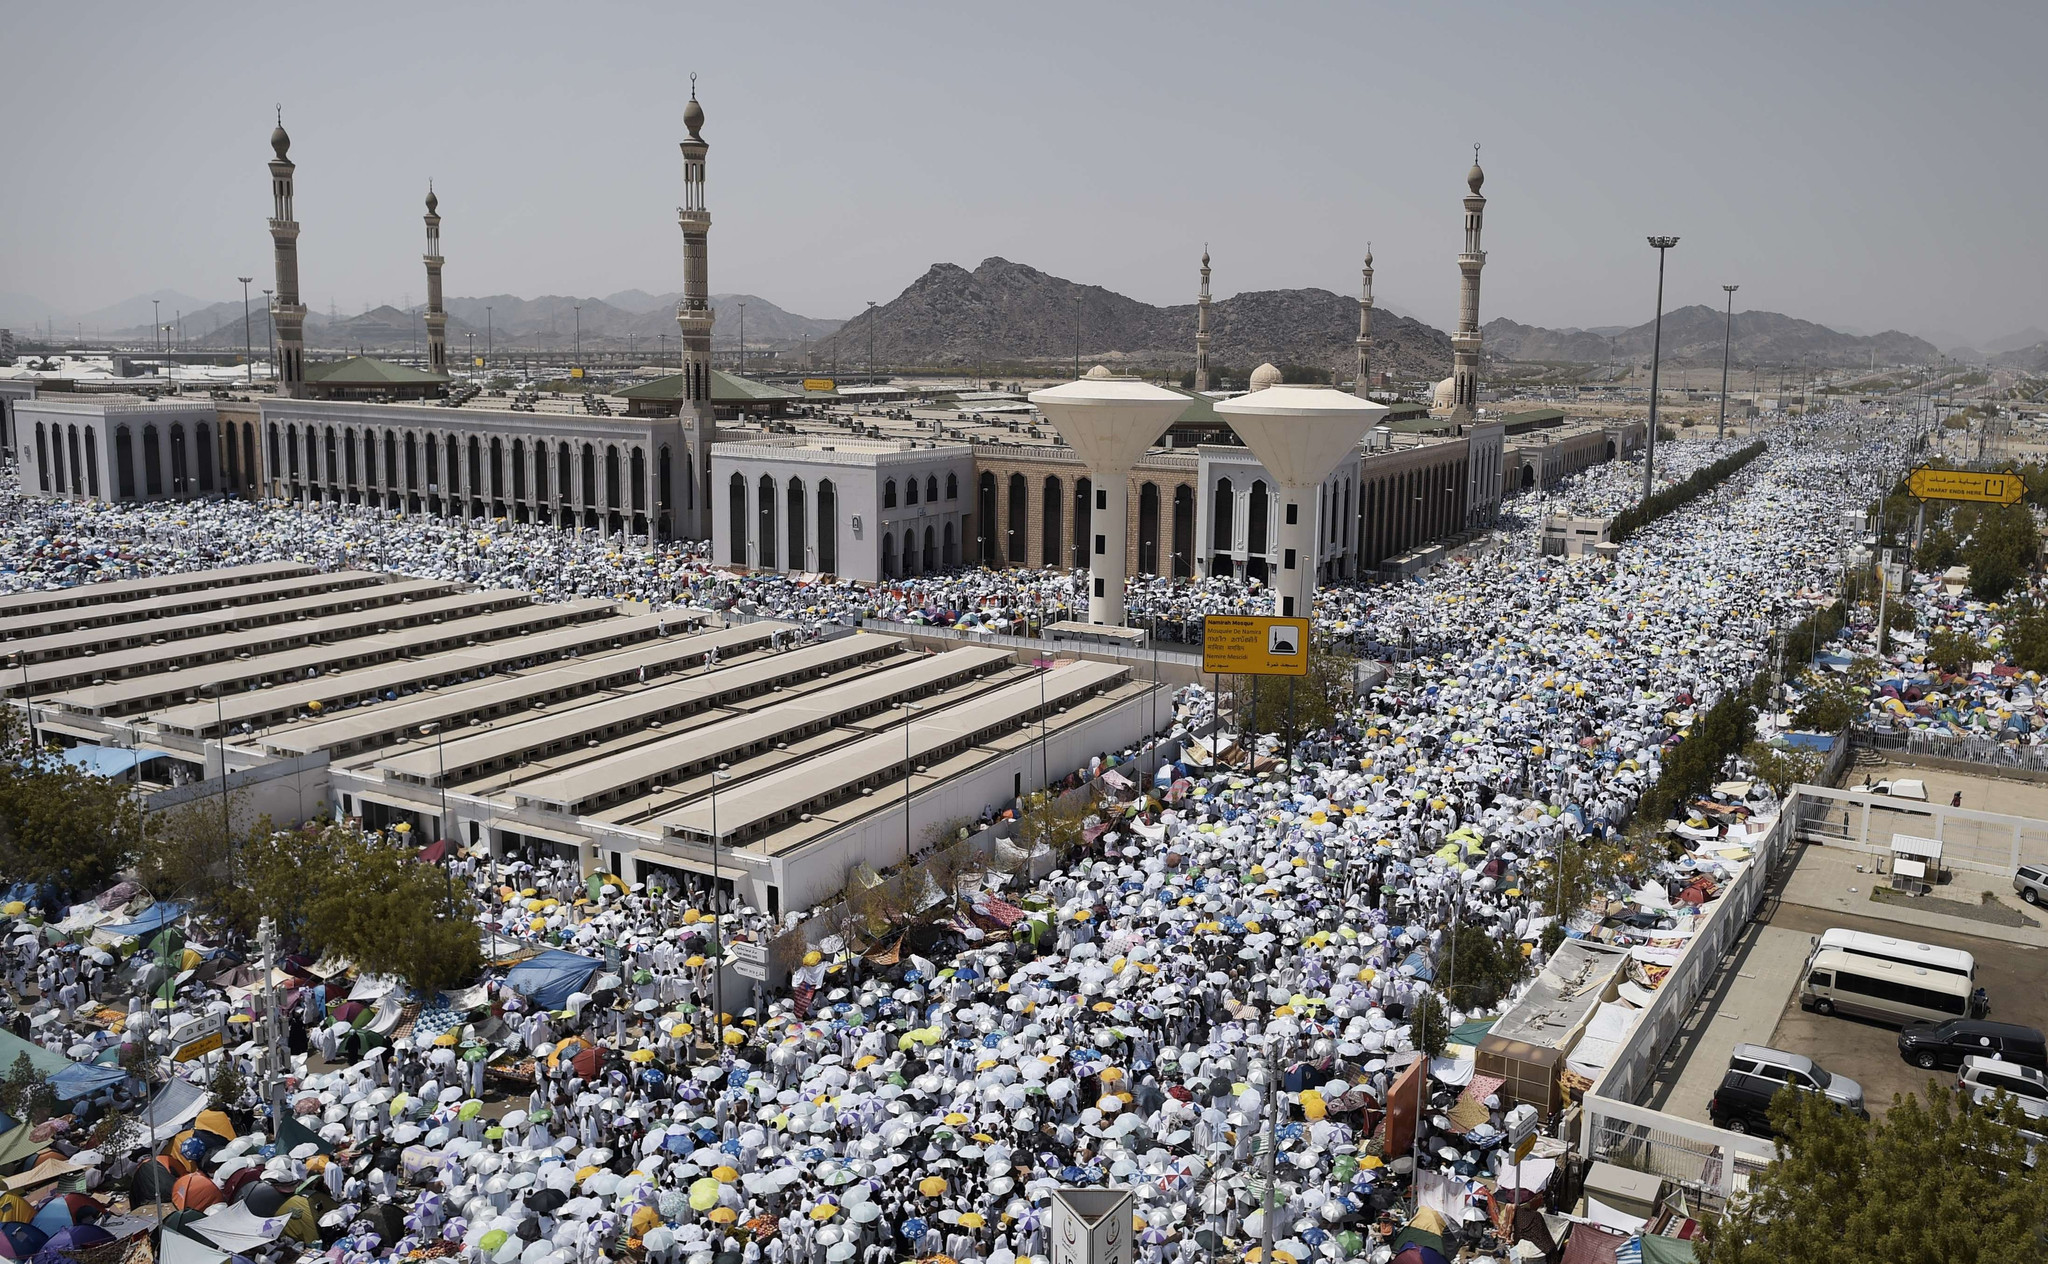 Q Amp A The Hajj Pilgrimage And What It Means In Islam